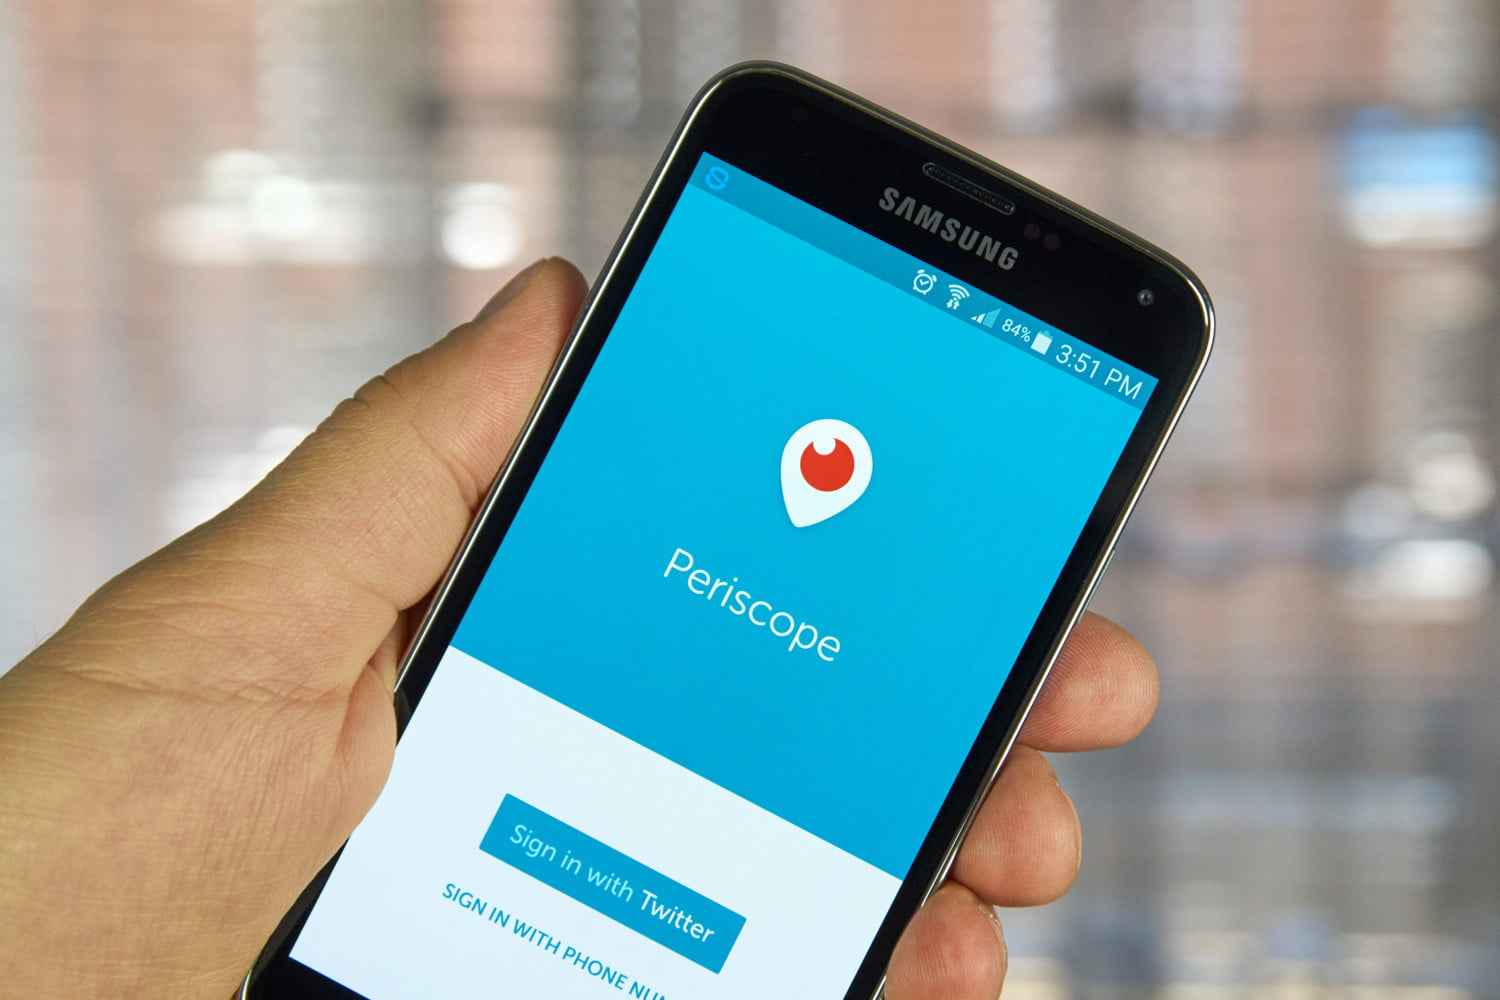 can i use periscope on my laptop